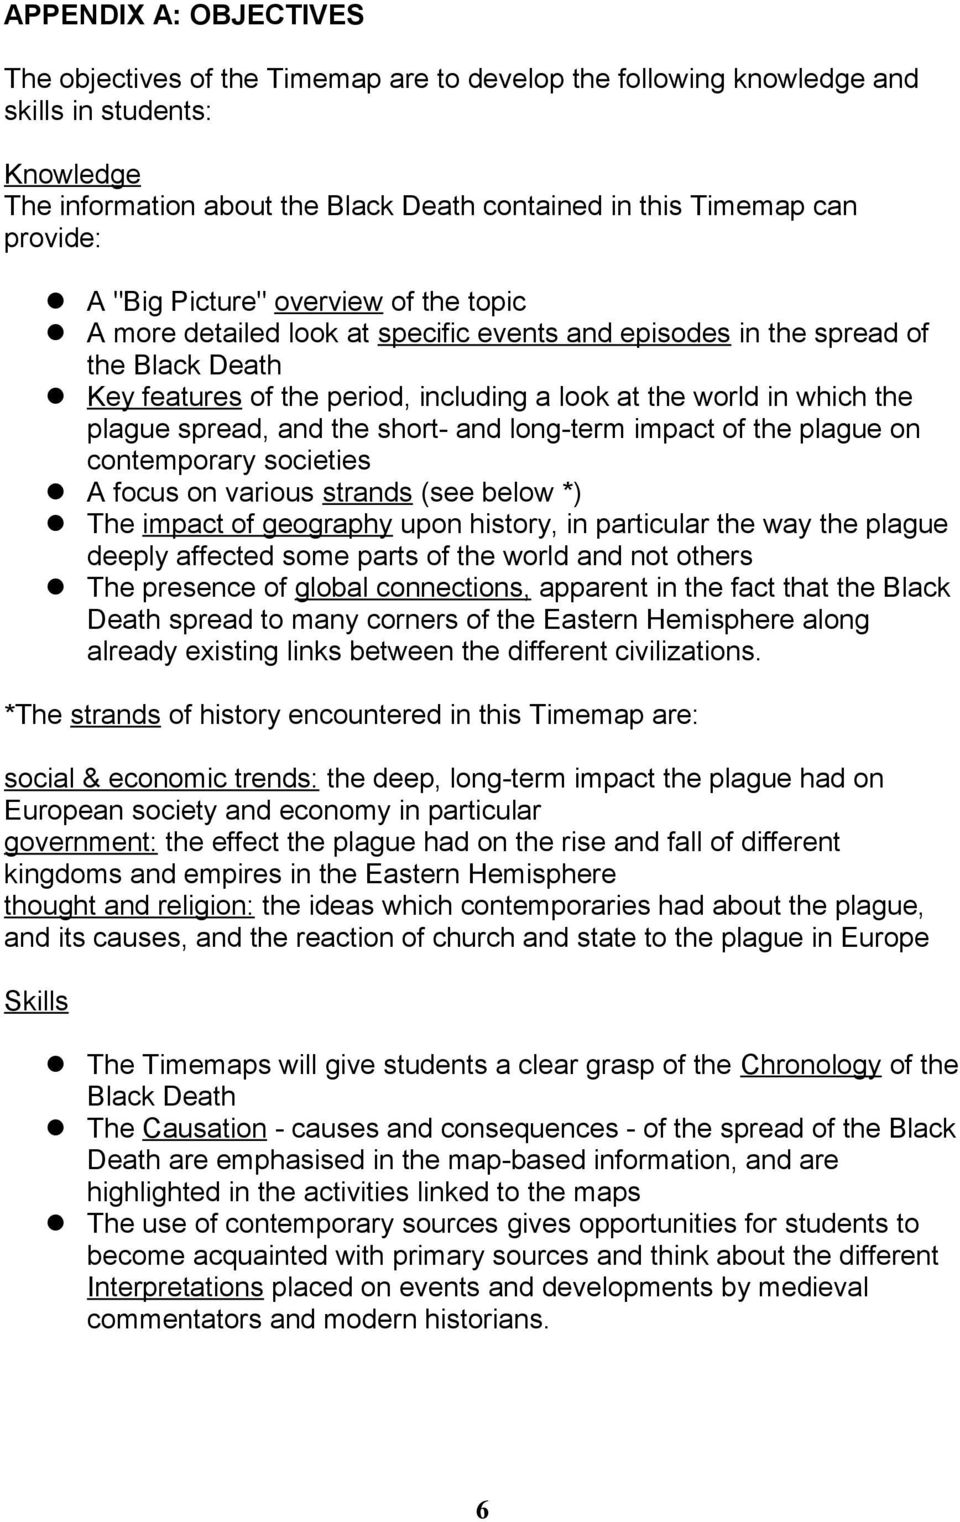 what were the short term effects of the black death